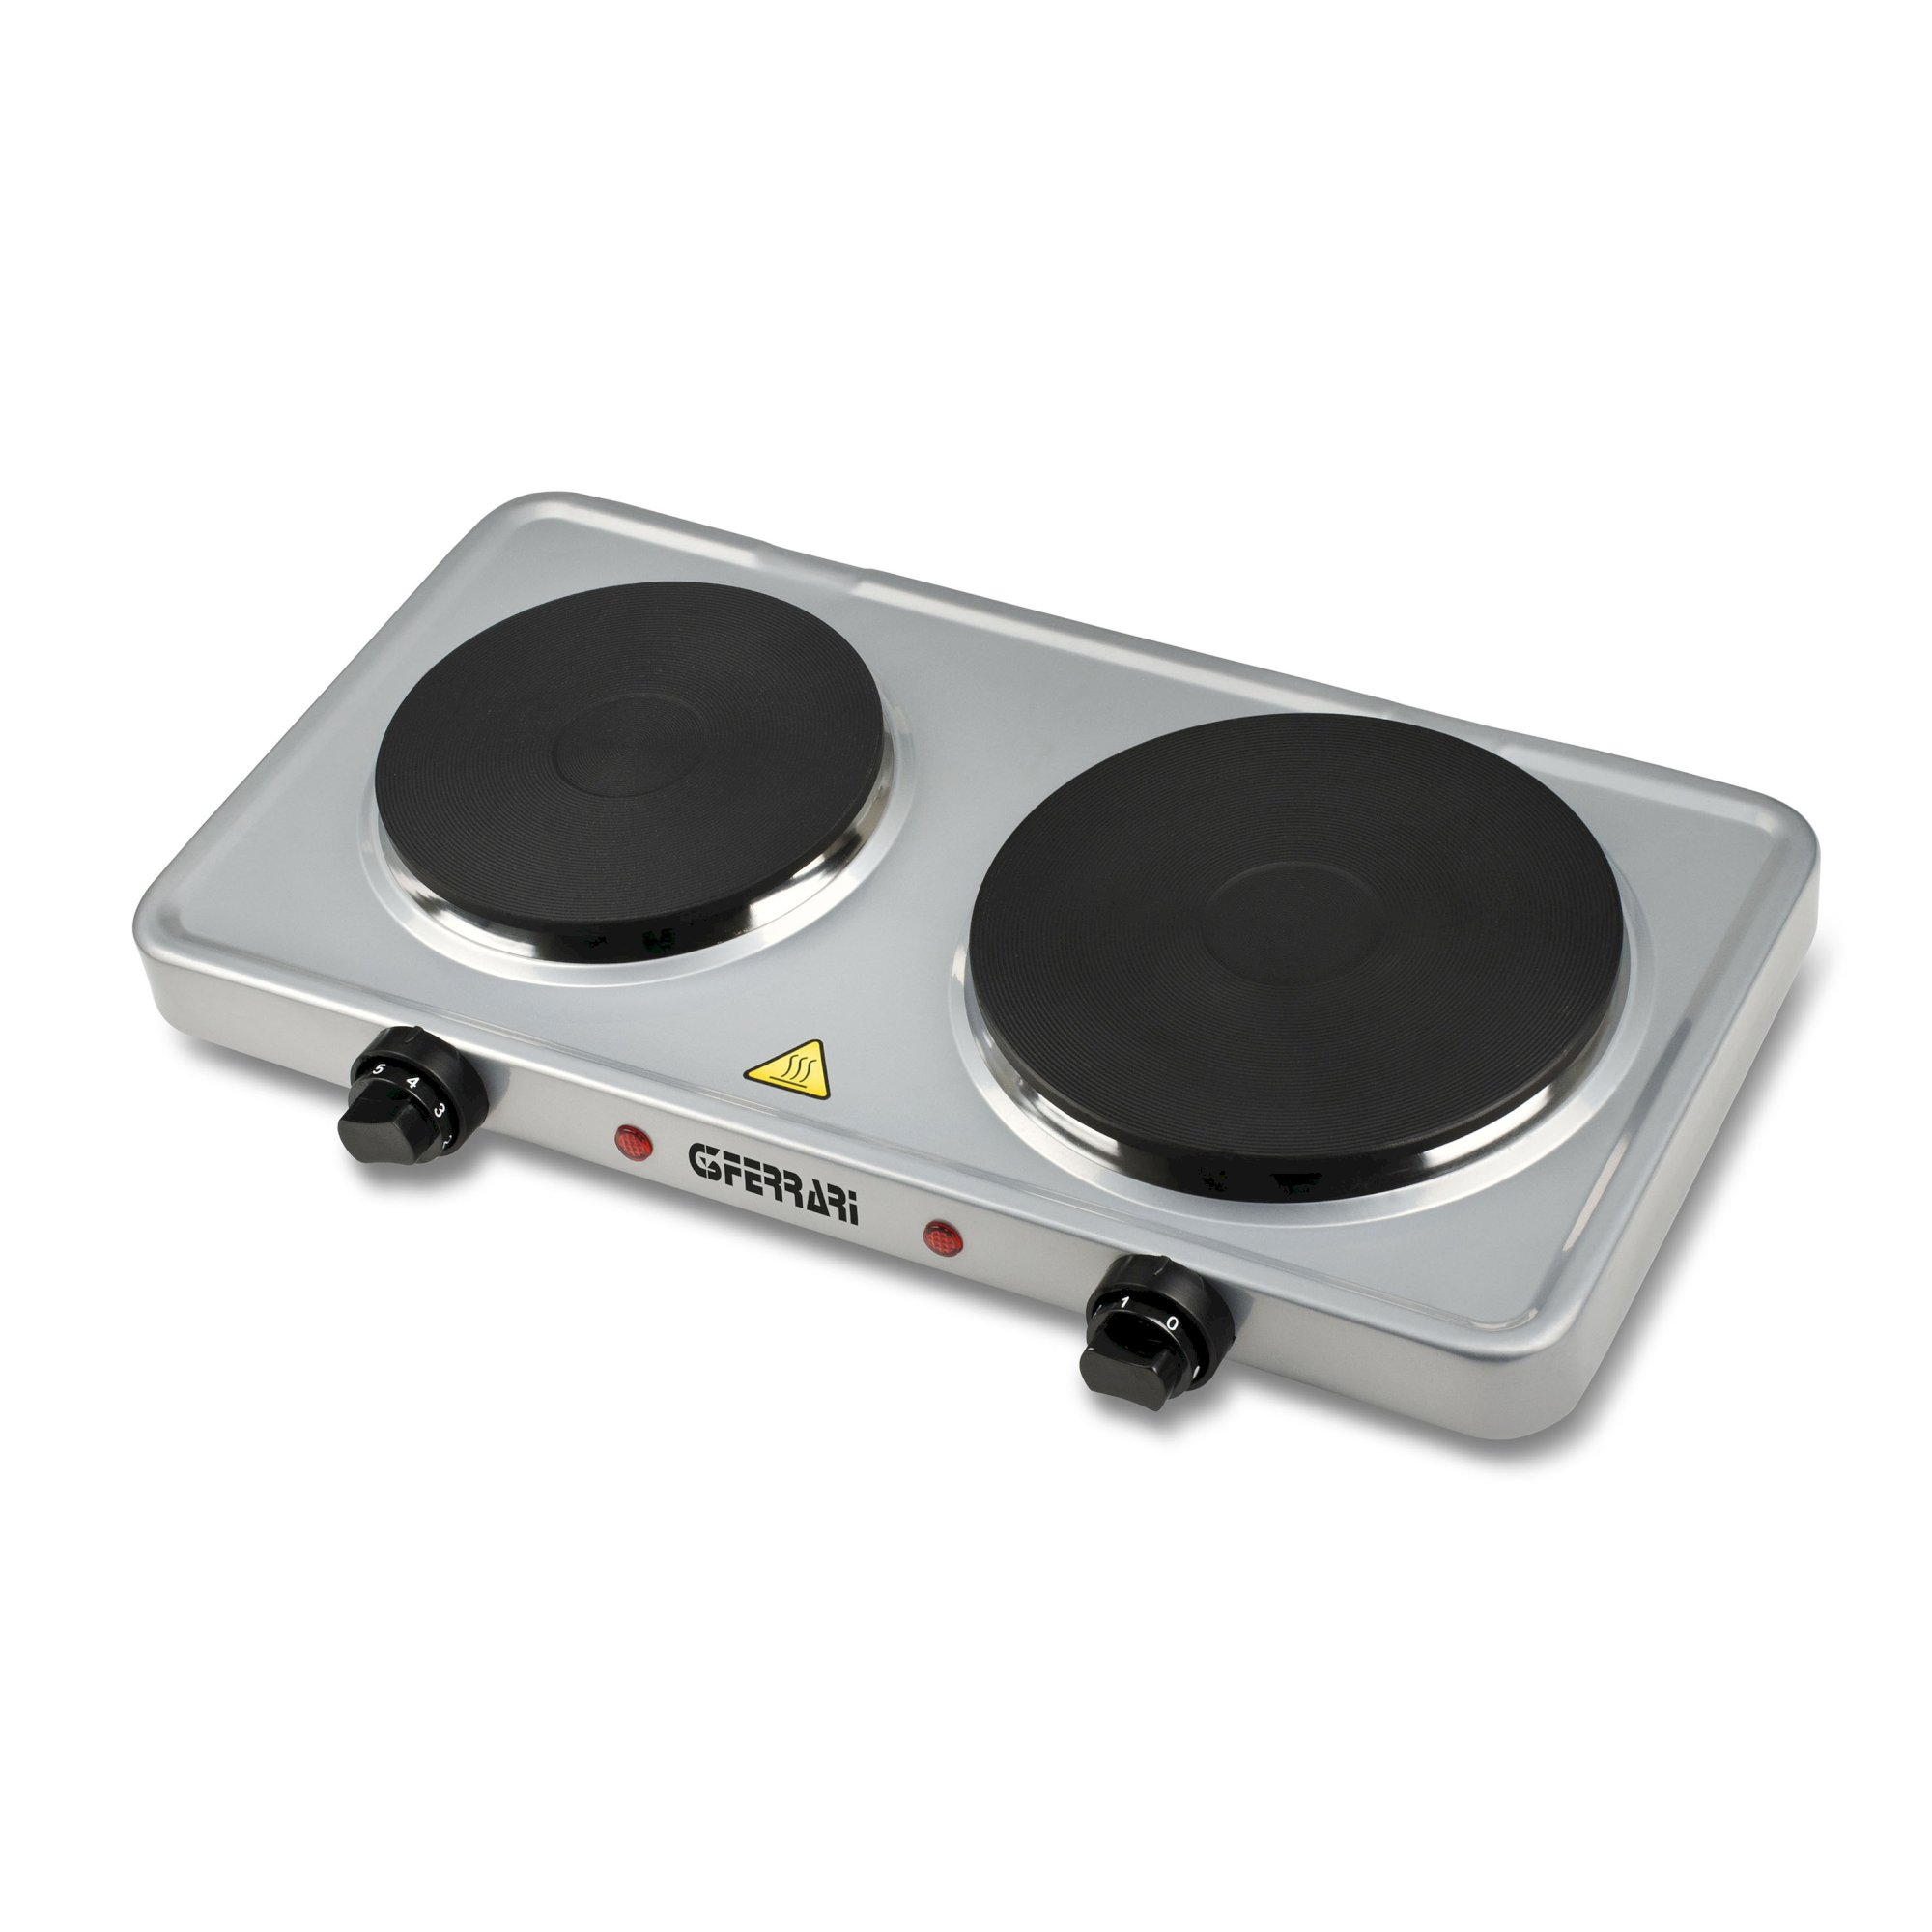 G1012200, Caldos, double electric hotplate, 1500+1000W, silver